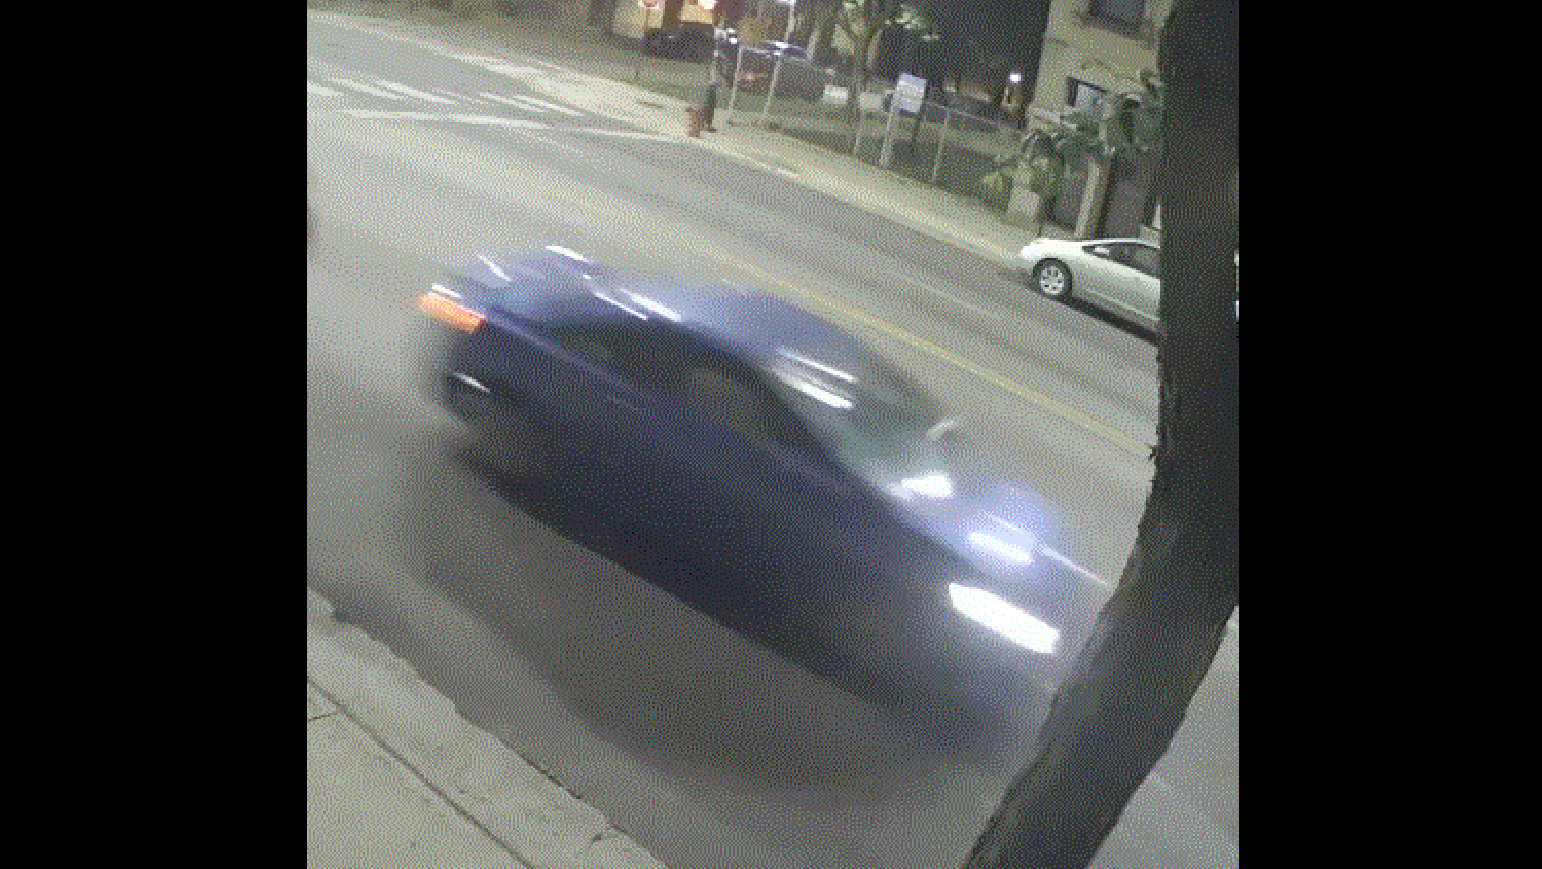 The driver of this vehicle is wanted by police for striking a bicyclist Sunday in Humboldt Park.